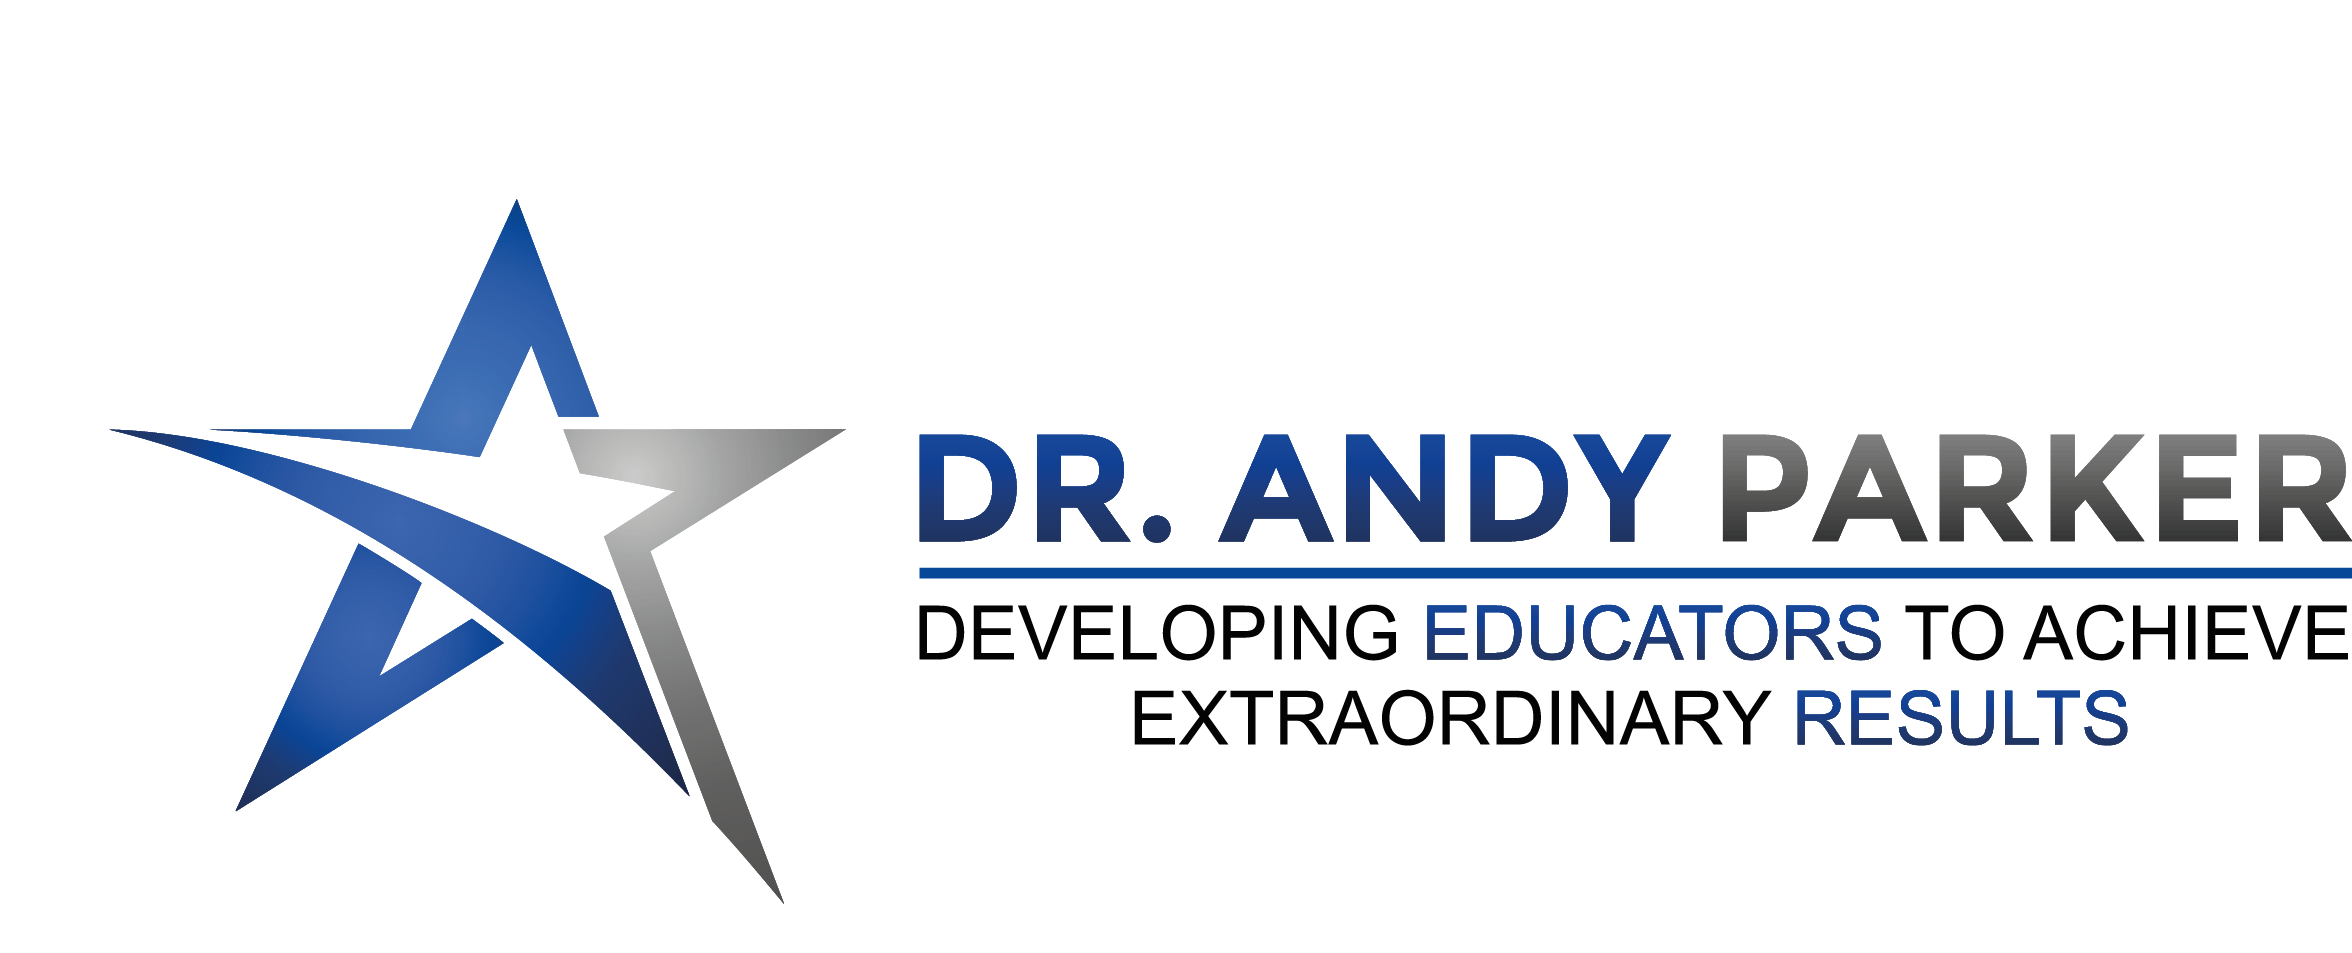 Dr. Andy Parker